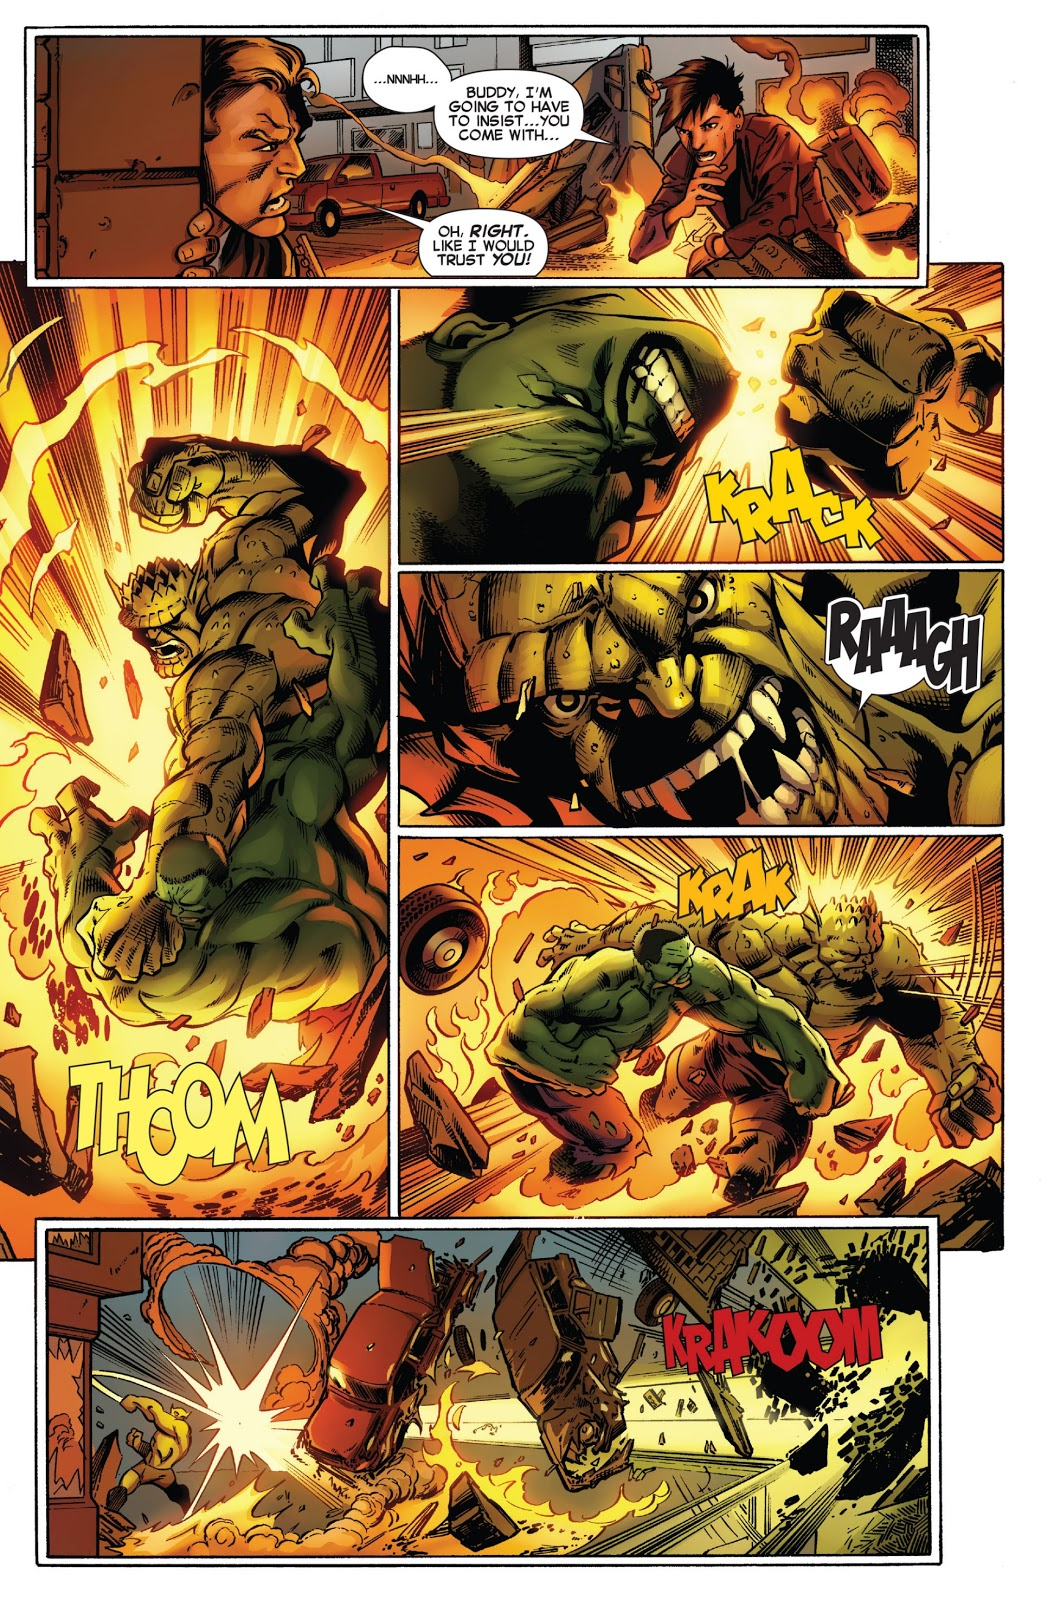 The Complete Collection Hulk by Mark Waid /& Gerry Duggan